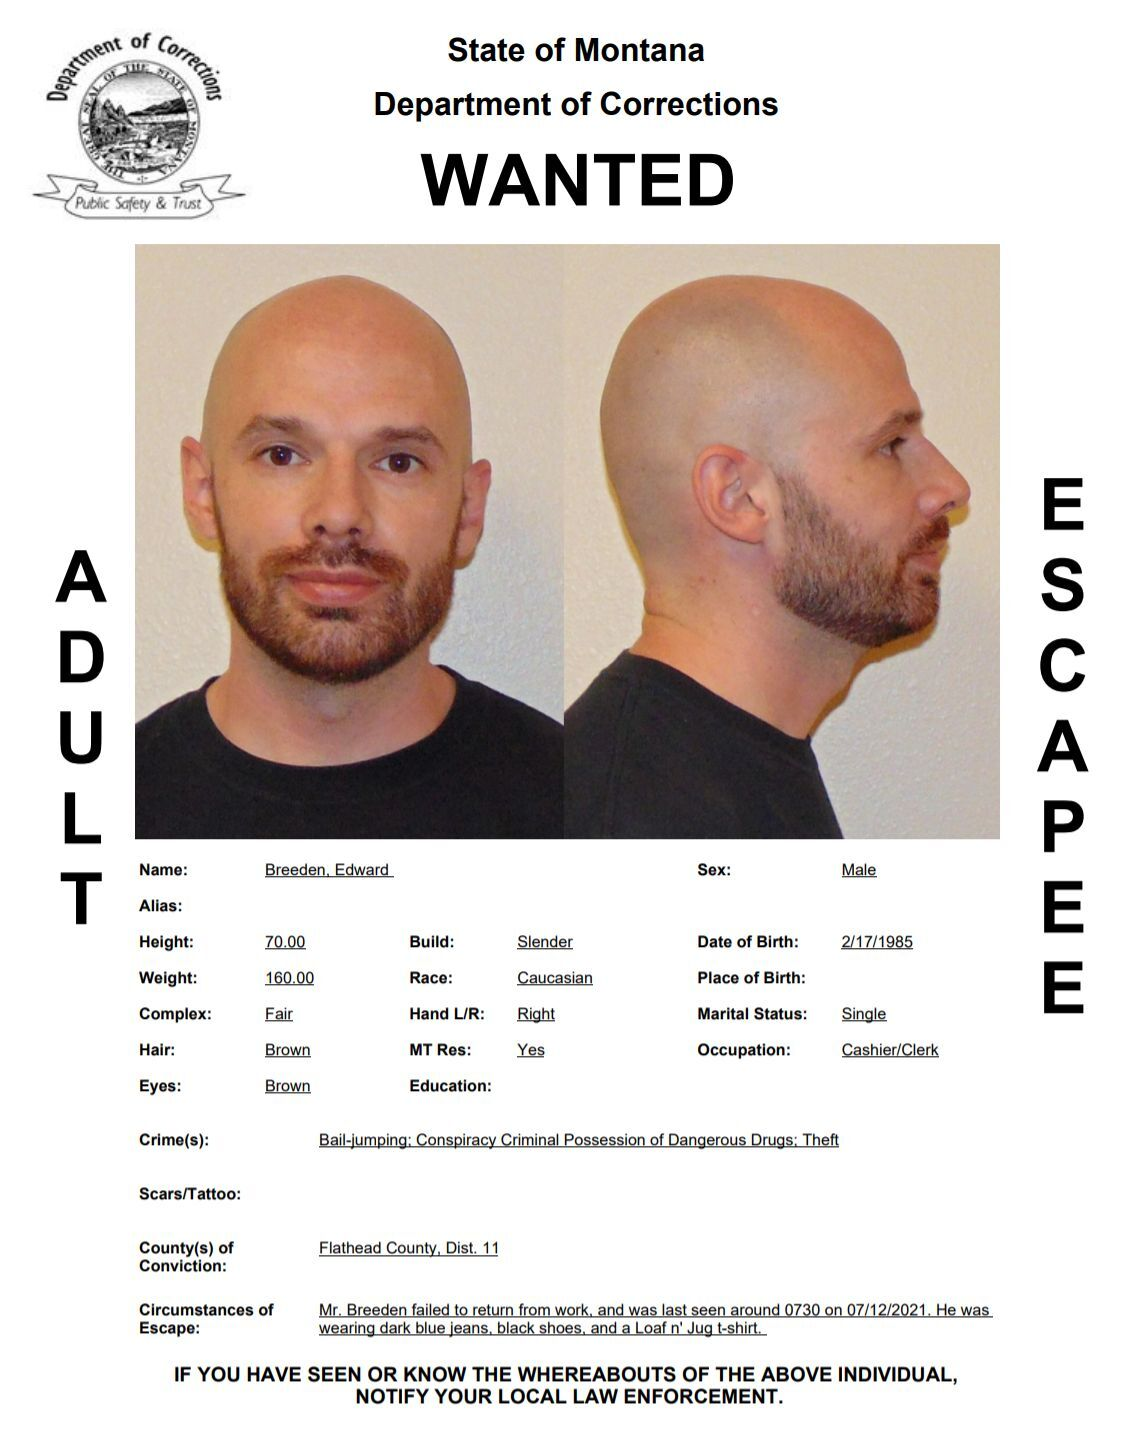 Edward Breeden has been reported as an escapee/walkaway from the Great Falls Pre-Release Center